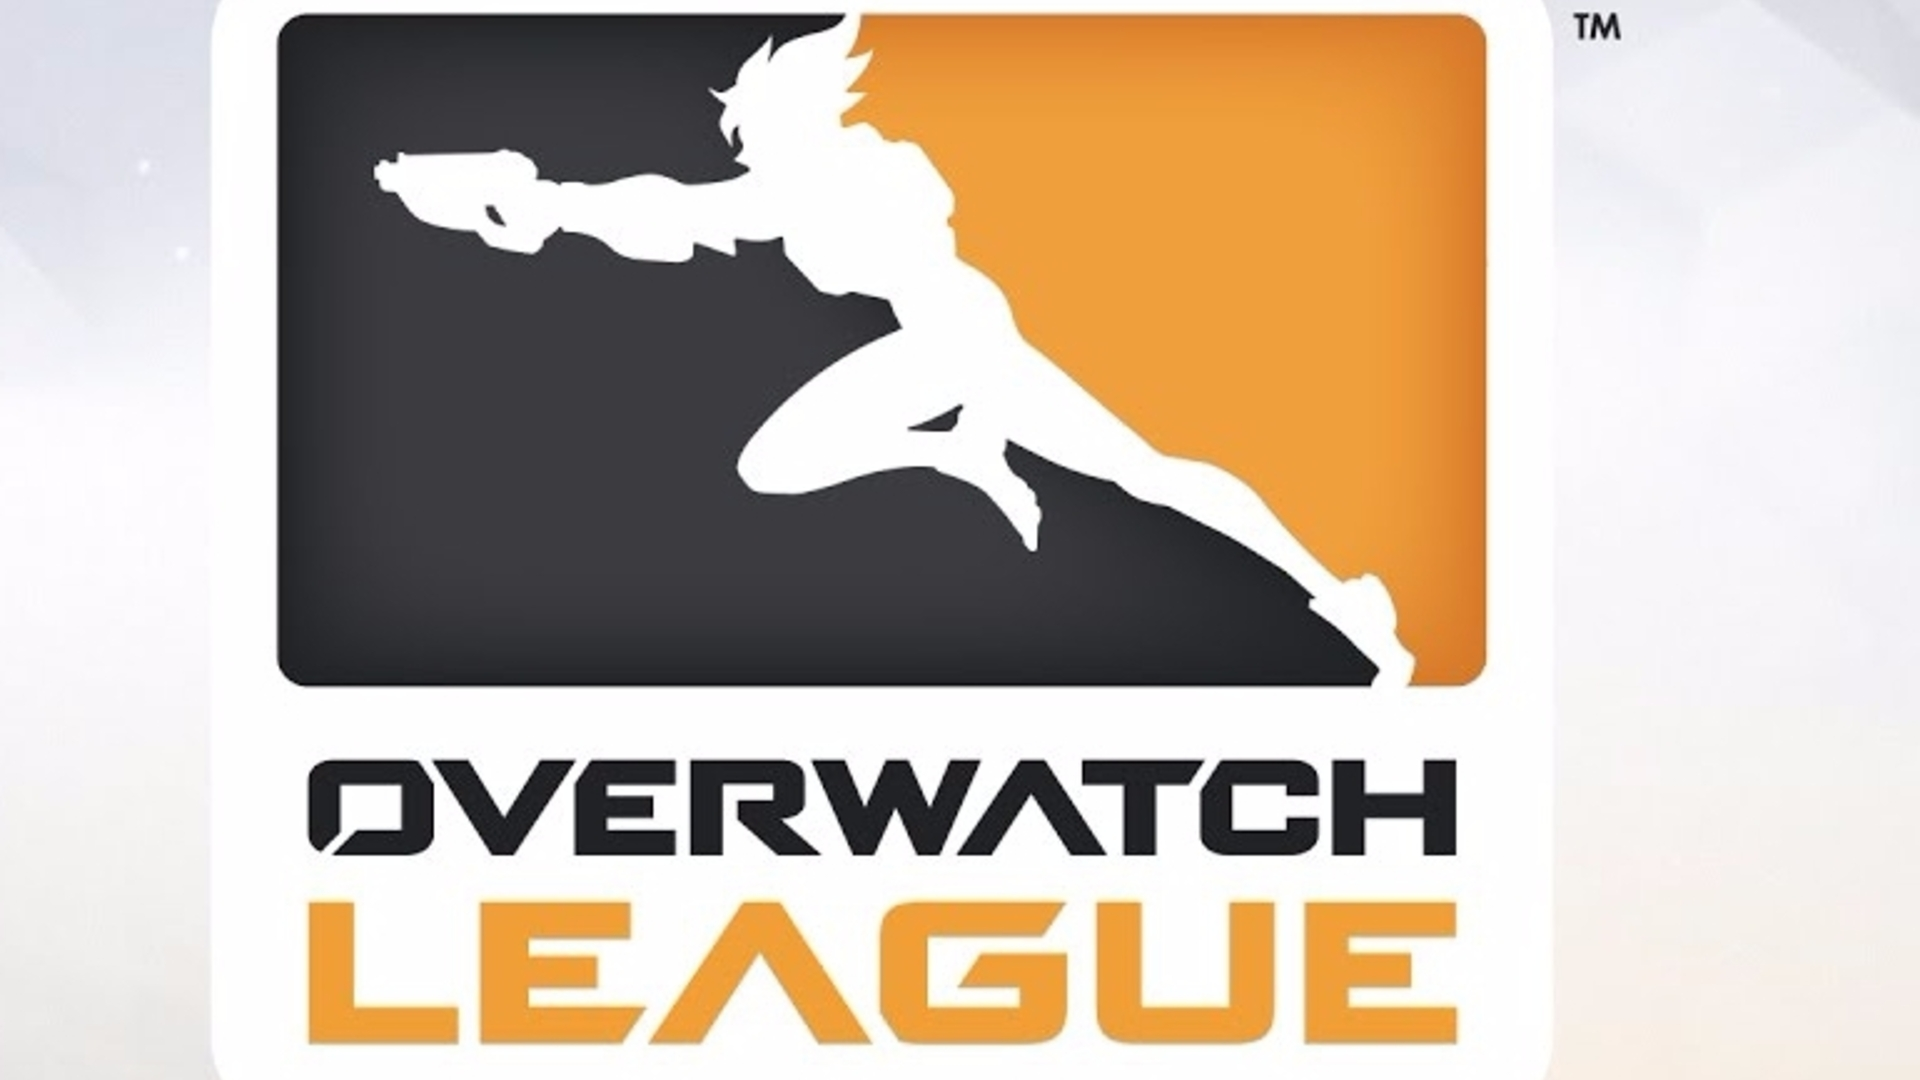 Blizzard's big plan for Overwatch esports allows teams to buy cities